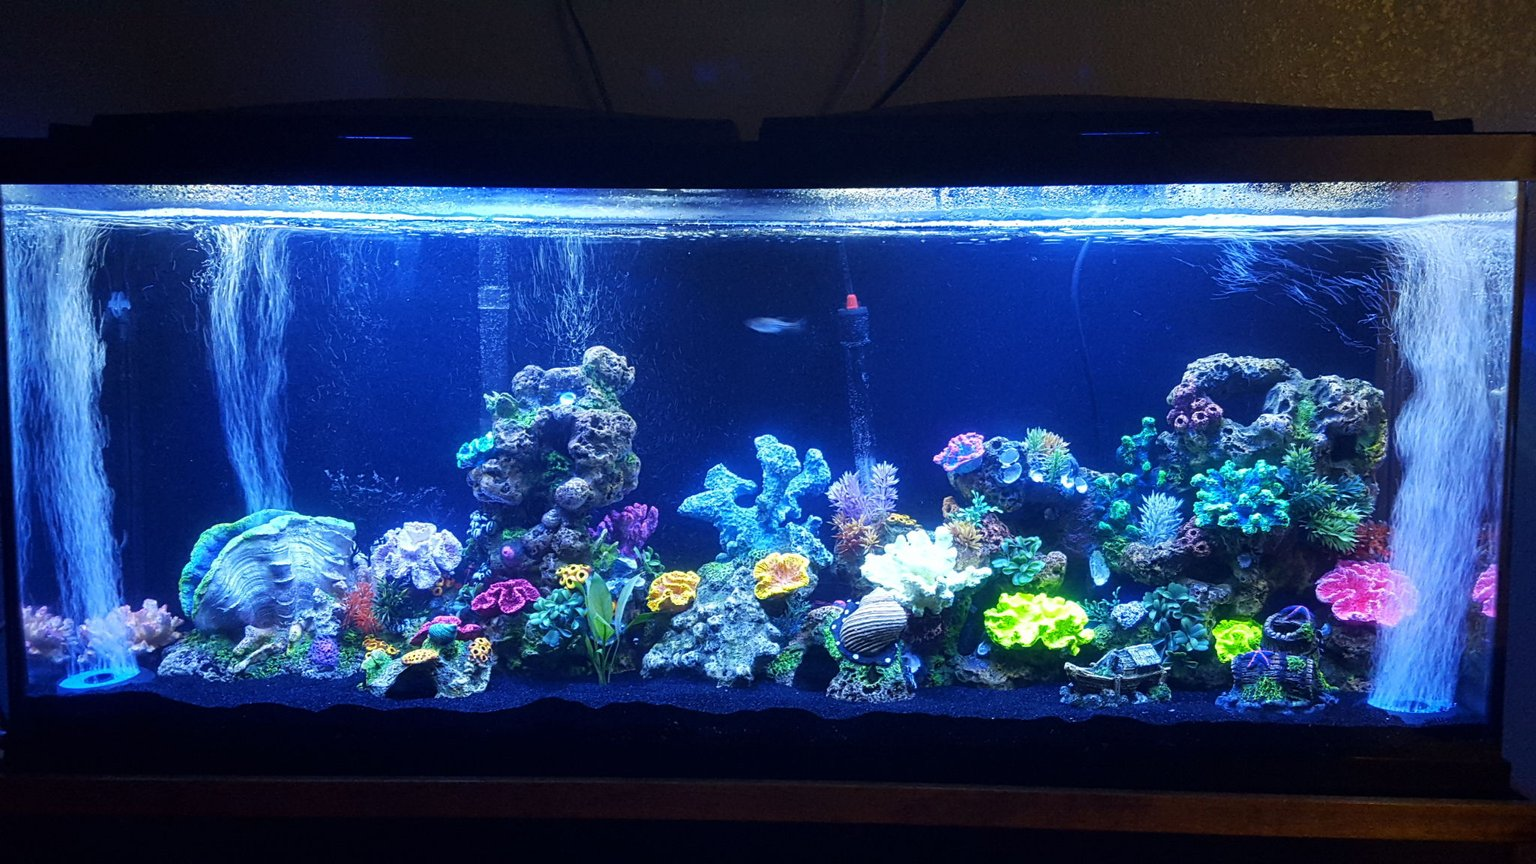 55 gallons freshwater fish tank (mostly fish and non-living decorations) - My lil project :)